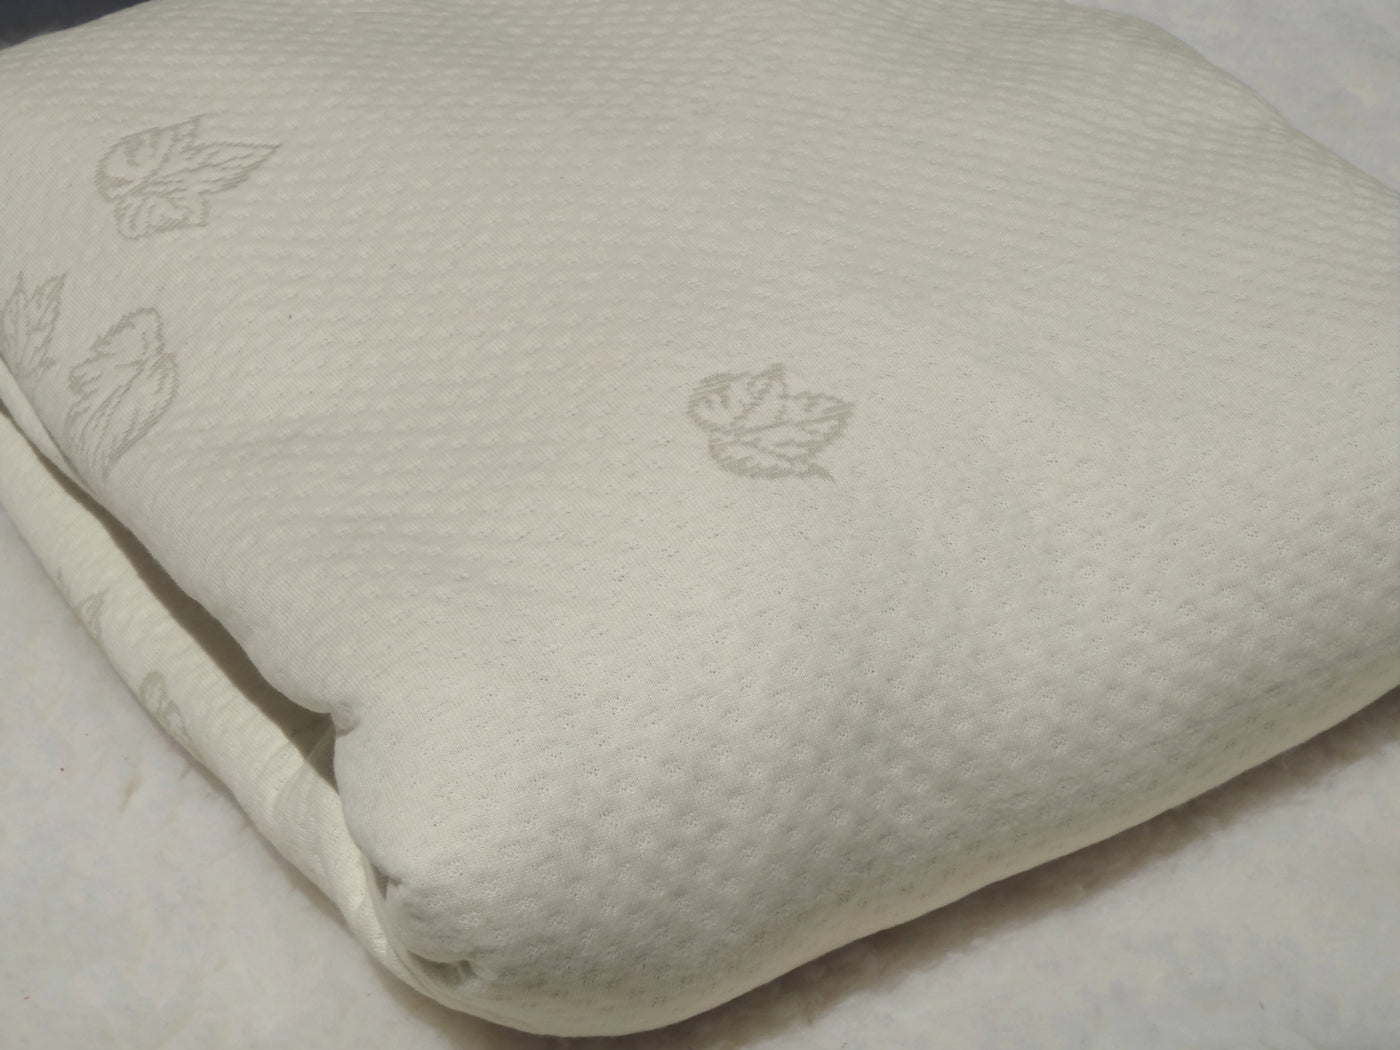 Deluxe Organic Knit Mattress Pad